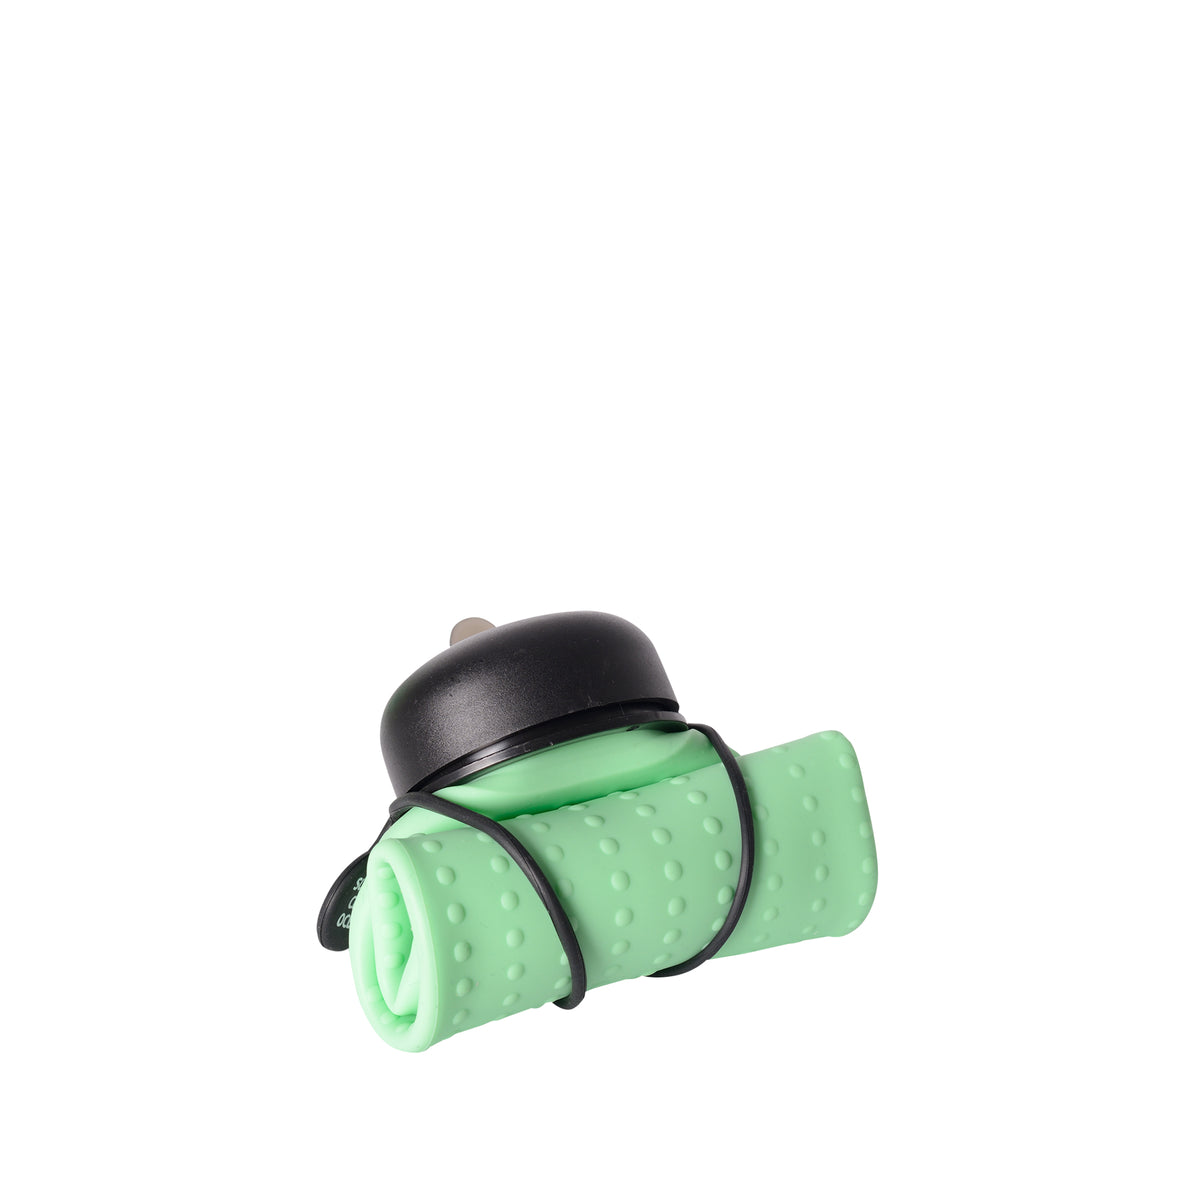 Rolla Bottle - Mint, Black + Black